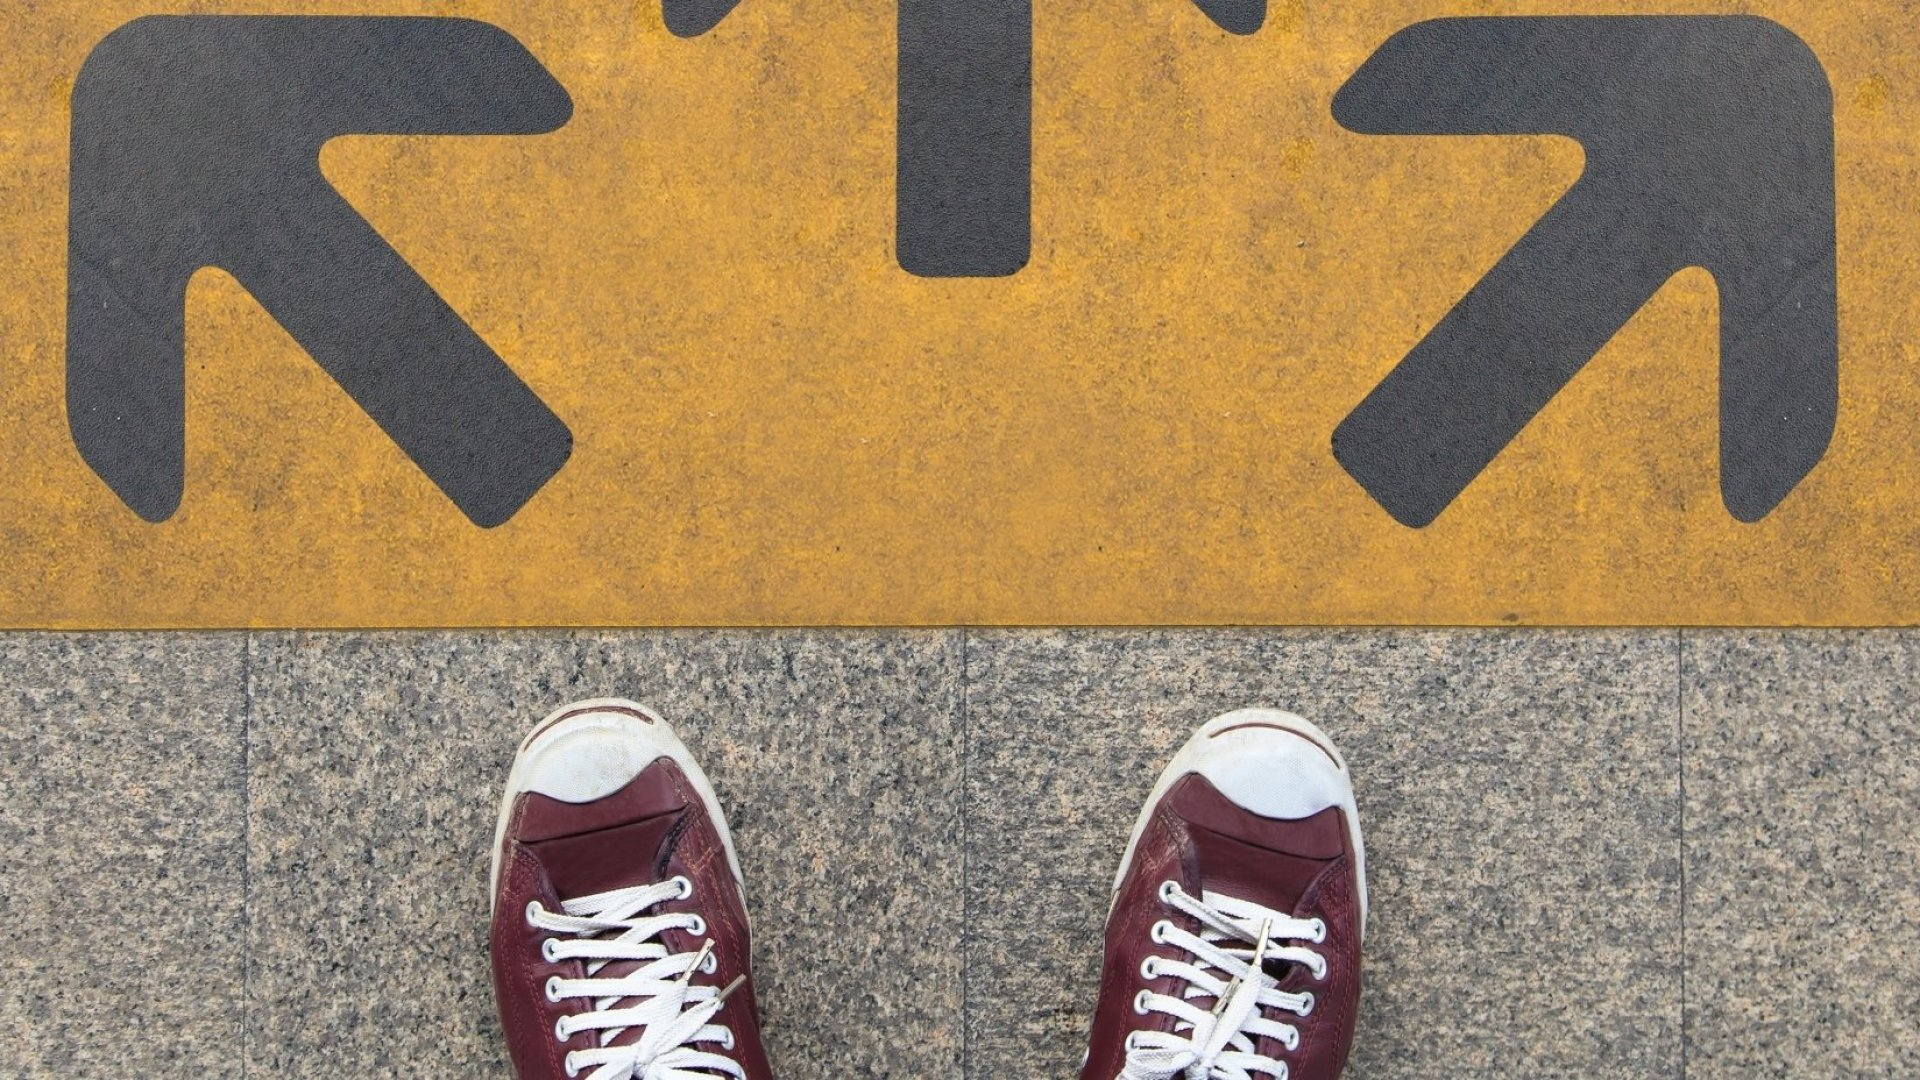 3 Ways to Make Decisions for Doing Your Best Work